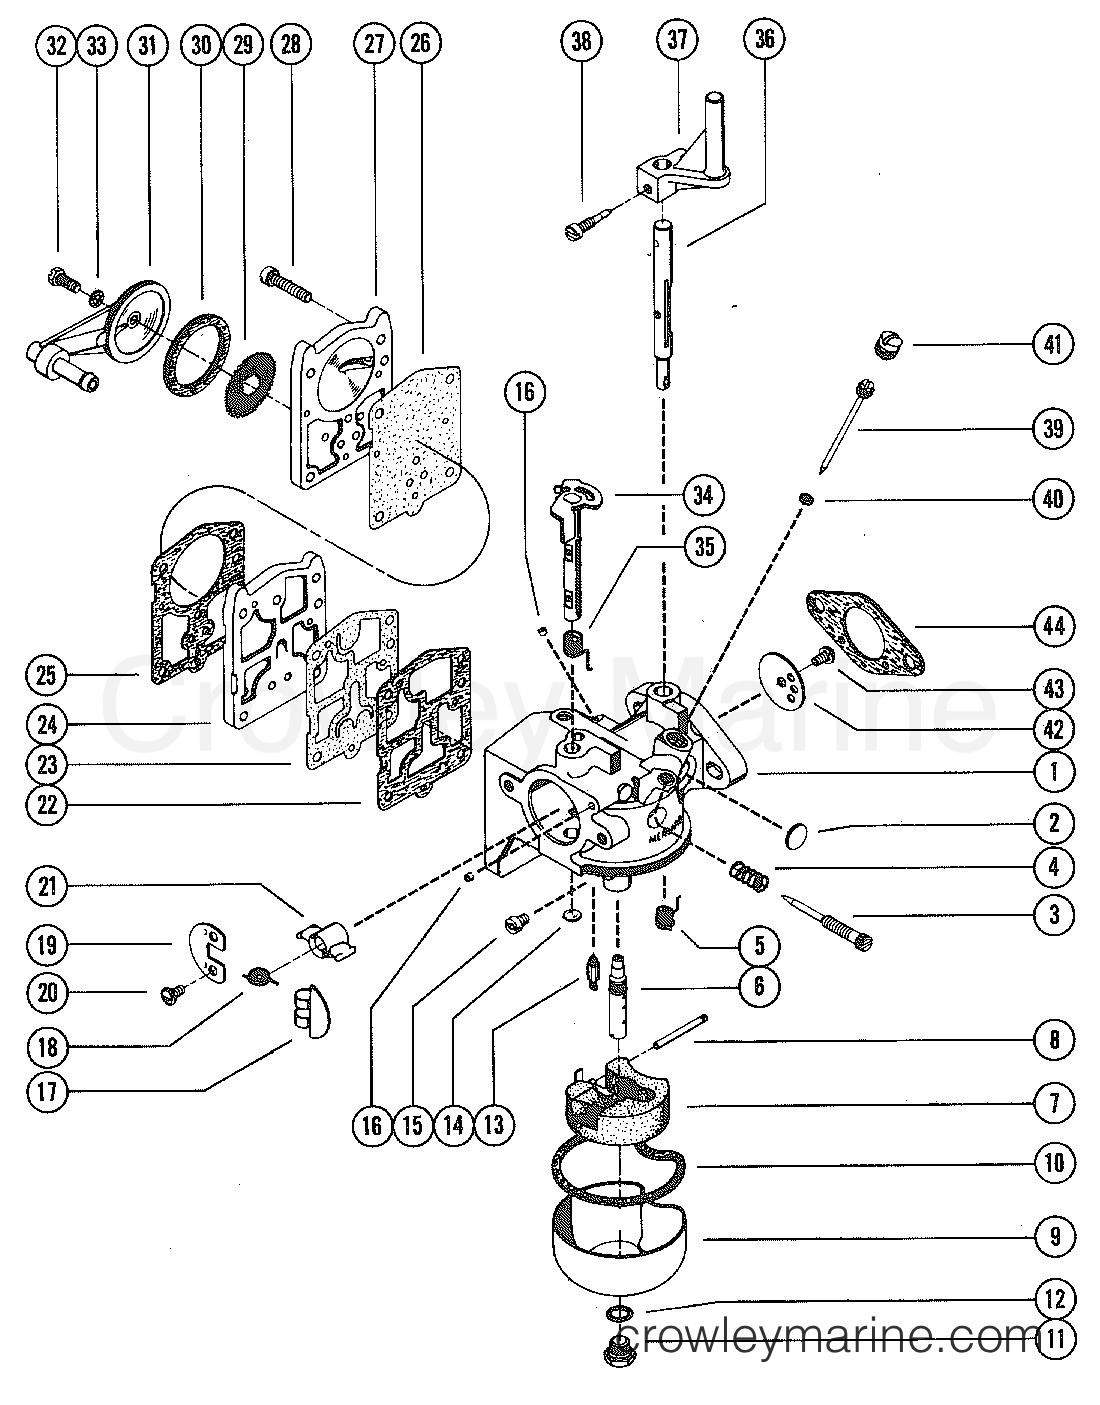 hight resolution of mercury carburetor diagram wiring diagram featured carburetor assembly complete 1975 mercury outboard 9 8 1110205